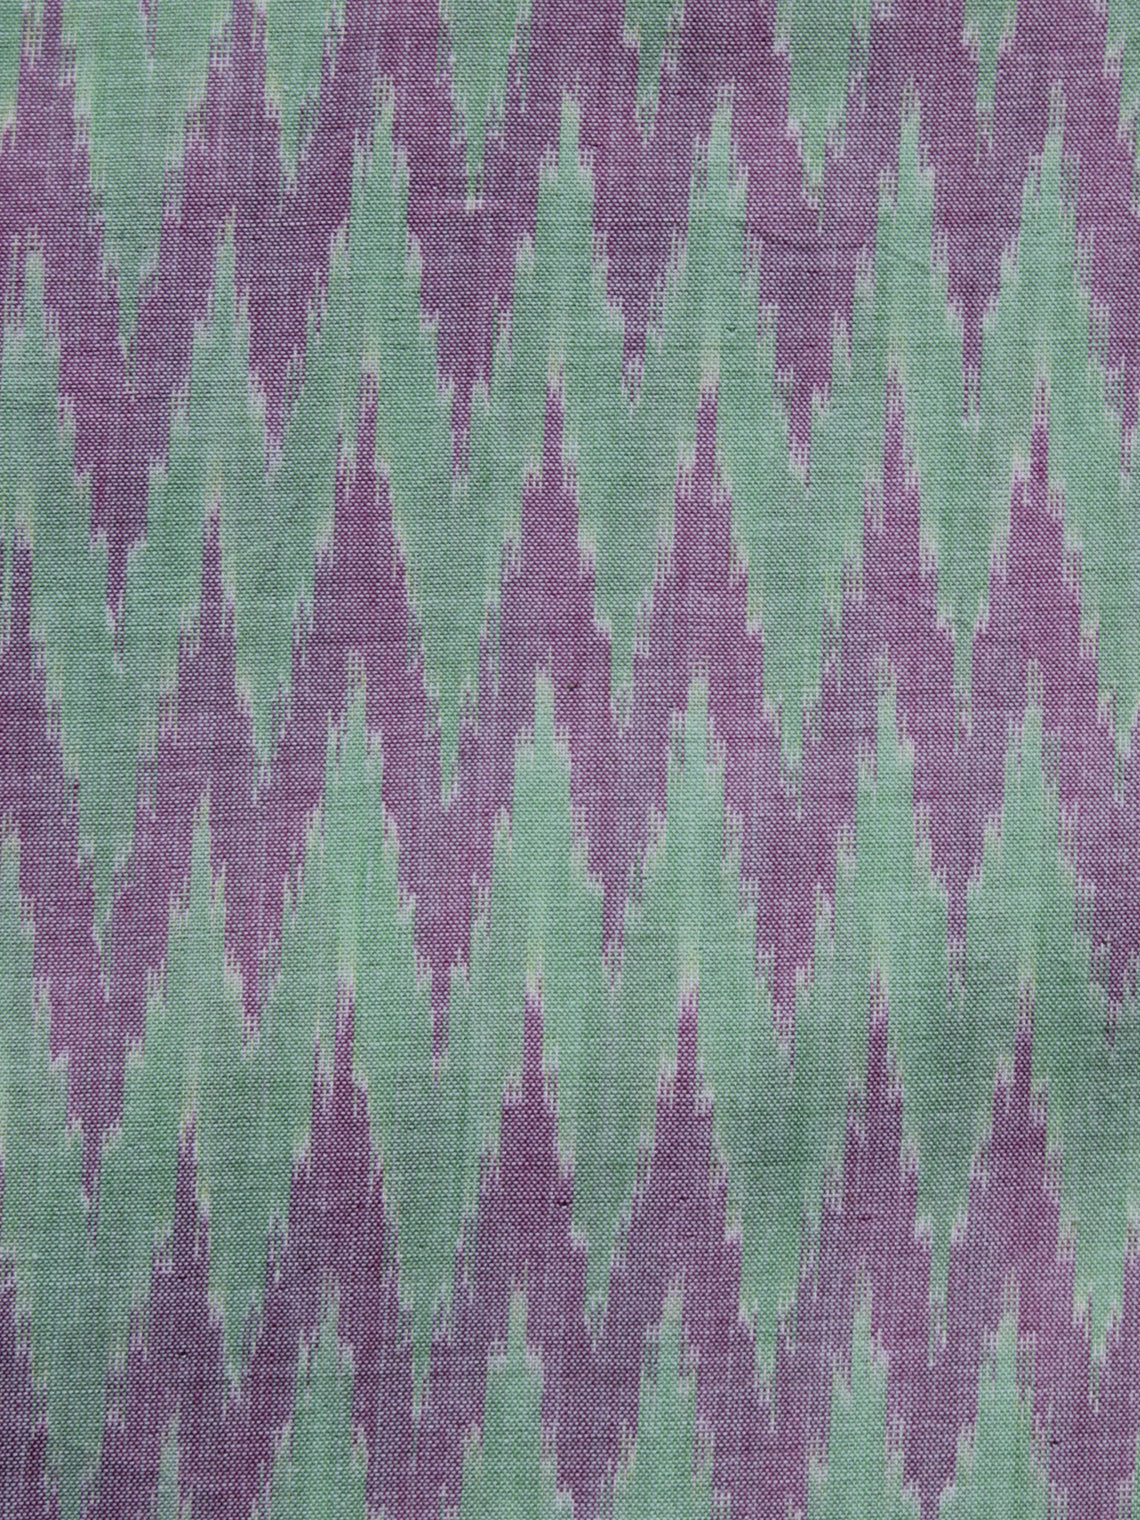 Lavender Green Pochampally Hand Weaved Ikat Mercerised Cotton Fabric Per Meter - F002F1027